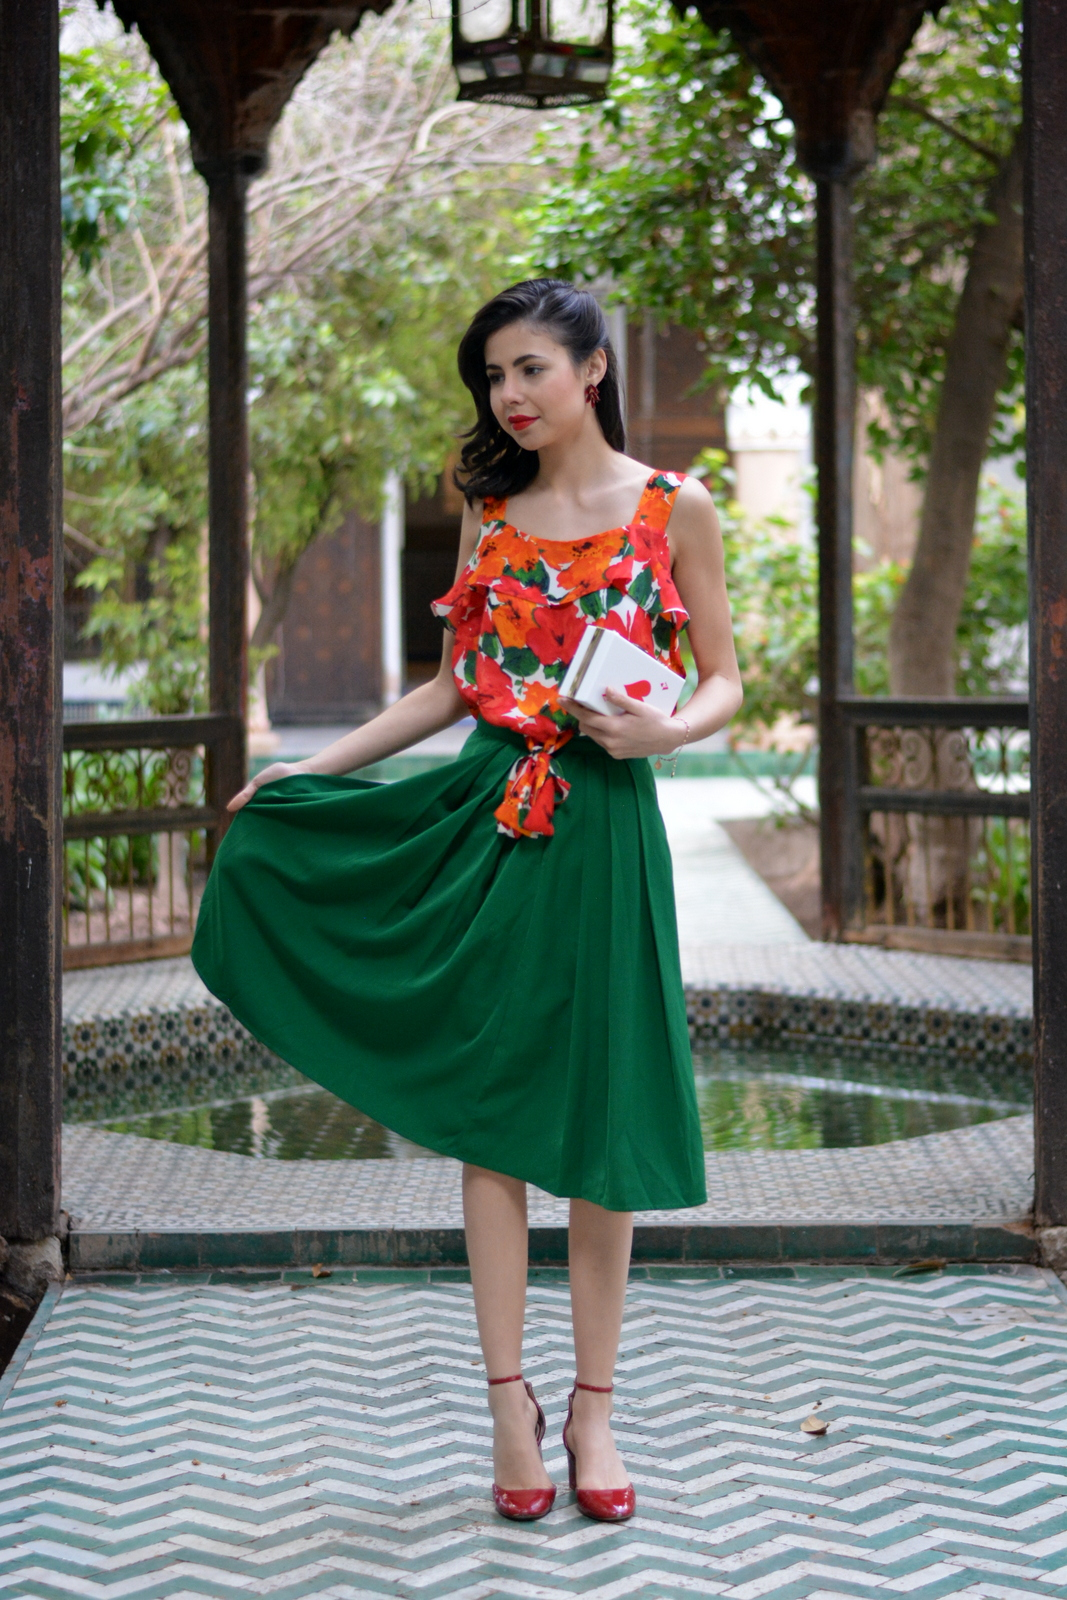 ootd, juliane borges, outfit, morocco, marrakech, persunmall, zara, oasap, editorial, magazine, culture and trend